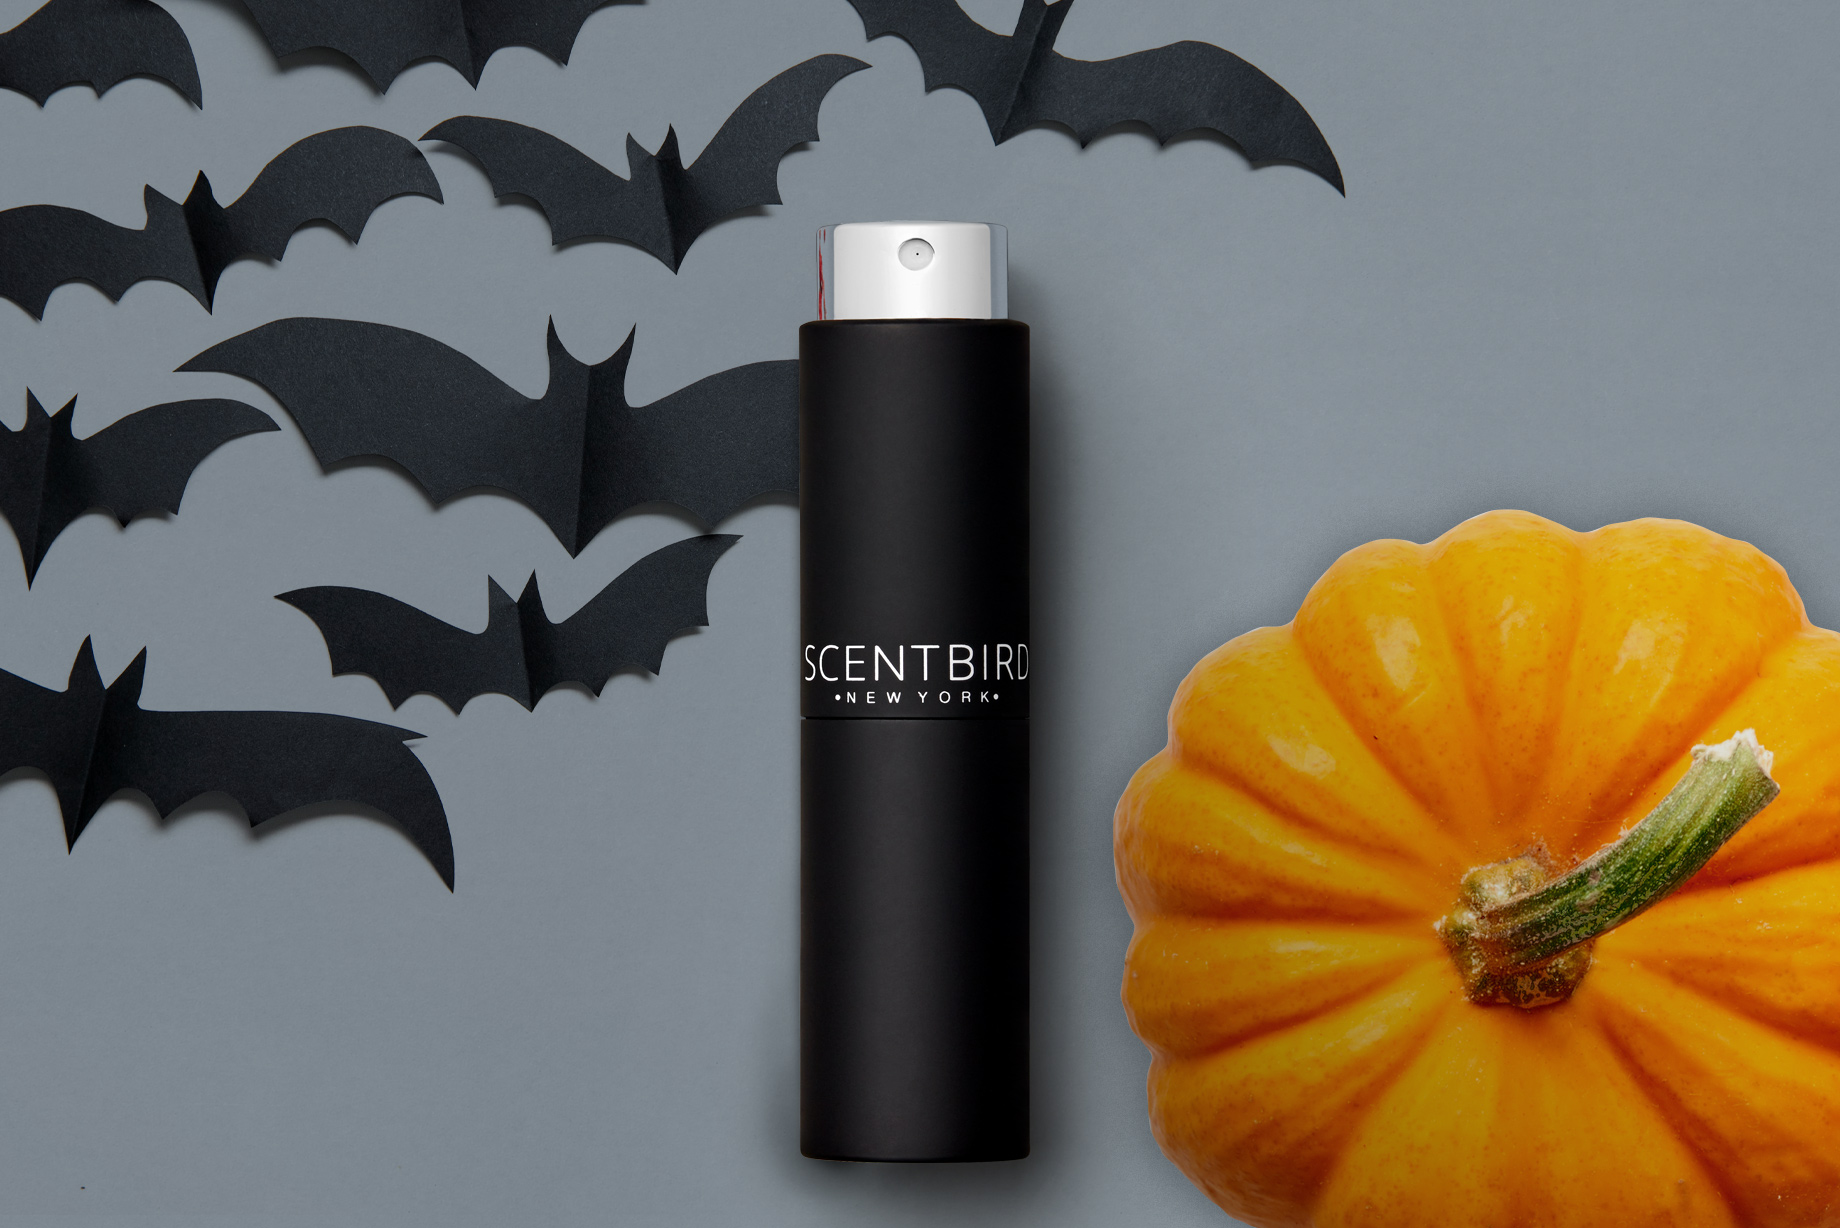 Spooky Scents Perfect for Halloween